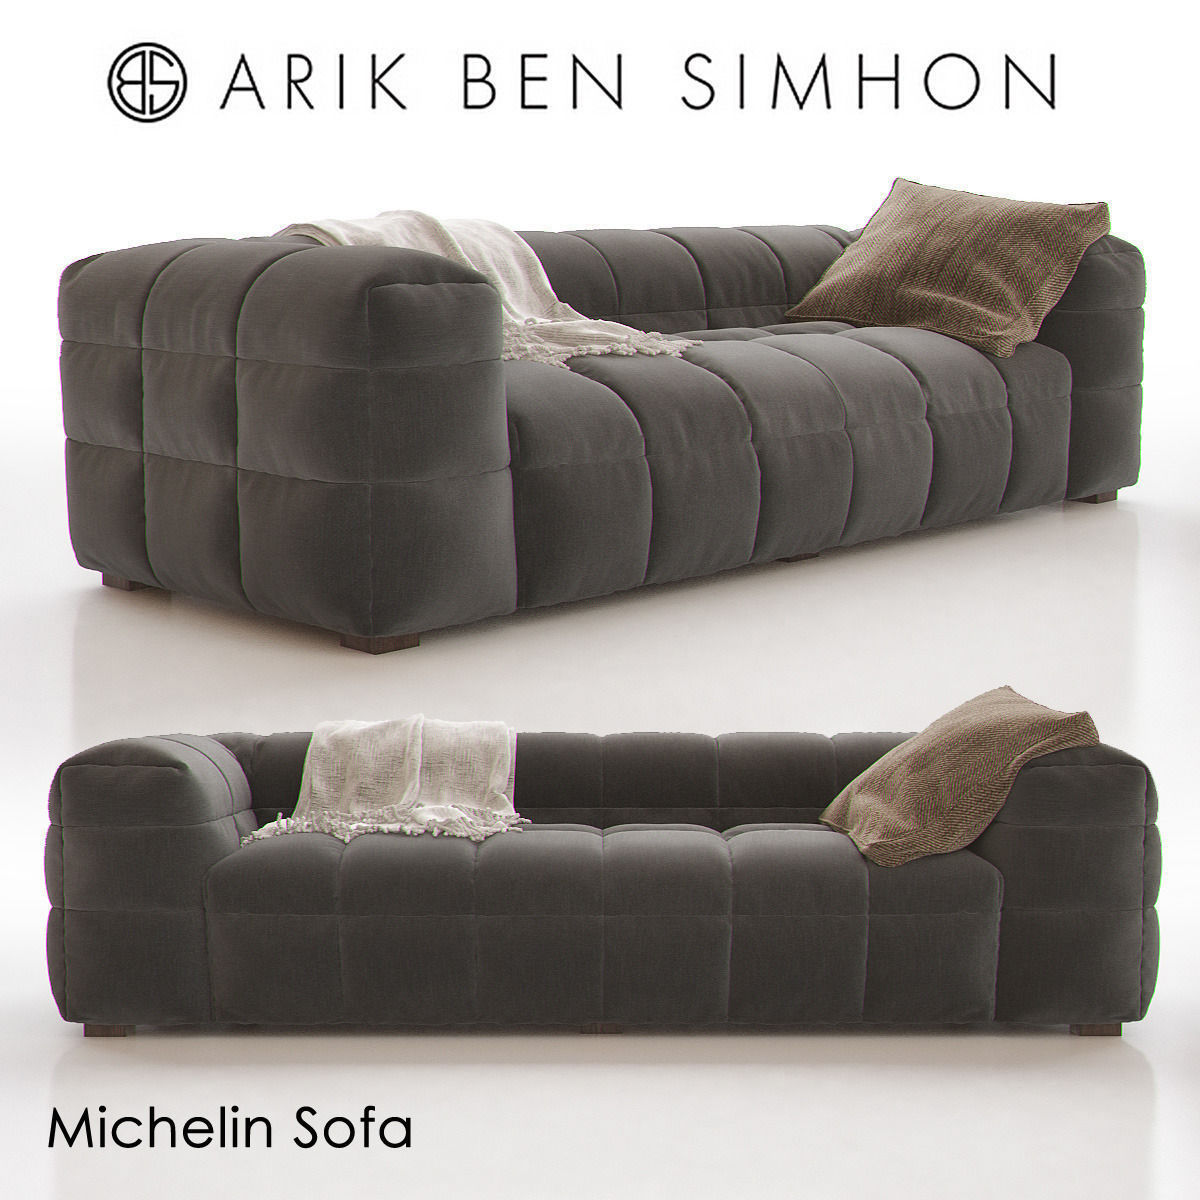 Beau Michelin Sofa By Arik Ben Simhon 3d Model Max 1 ...